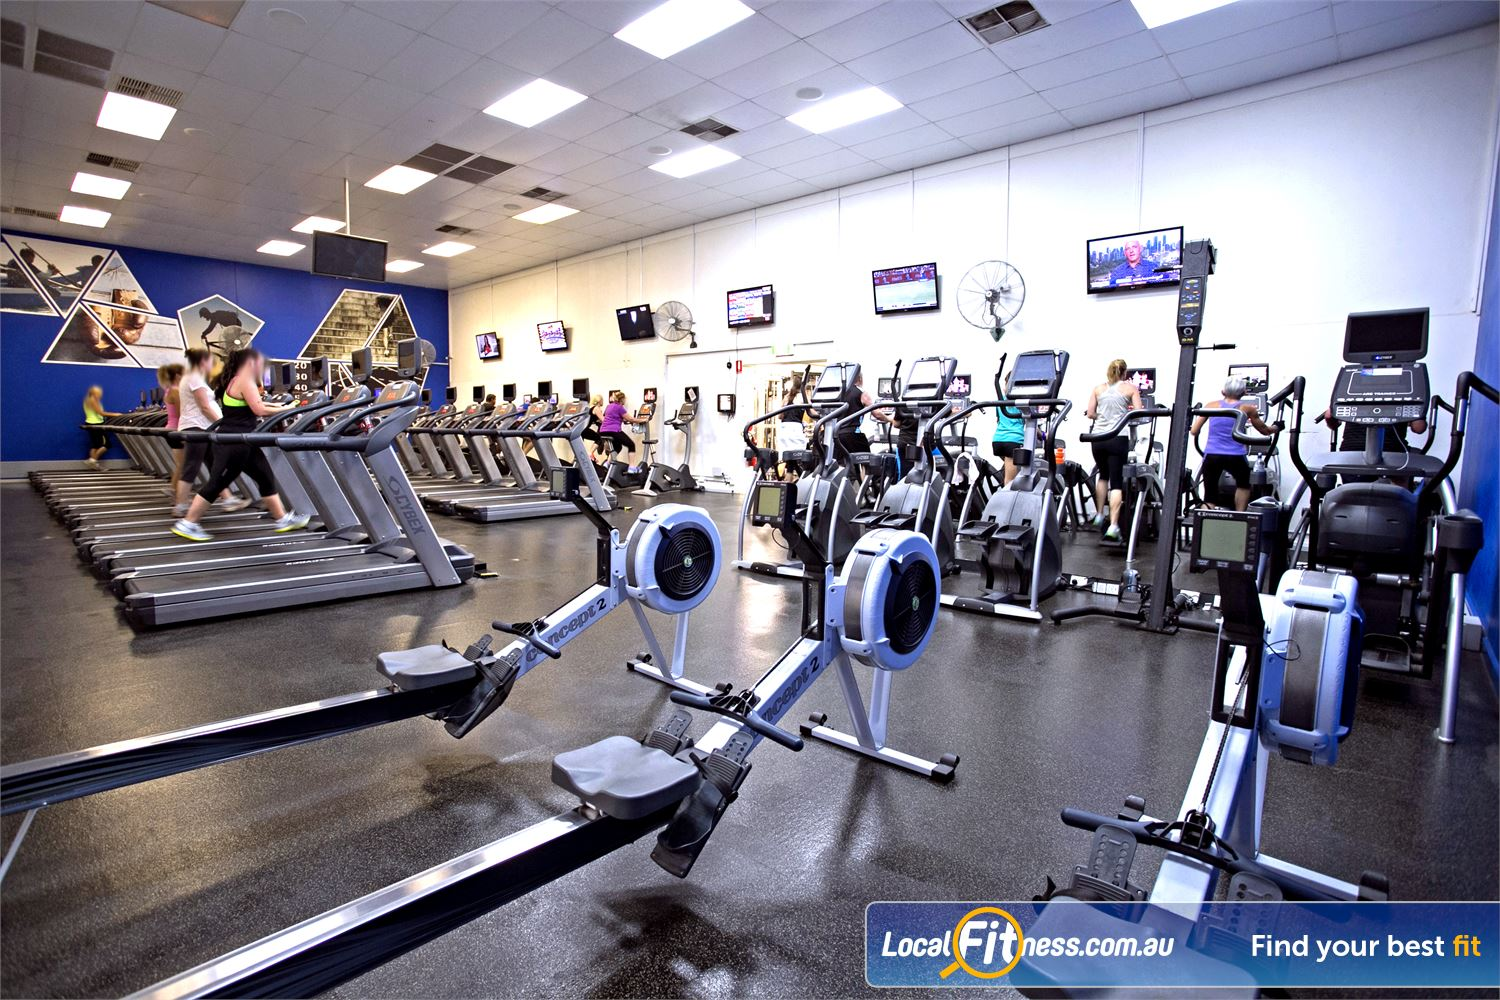 Goodlife Health Clubs Mitcham Kingswood The latest cycle bikes, cross trainers and treadmills from Life Fitness.